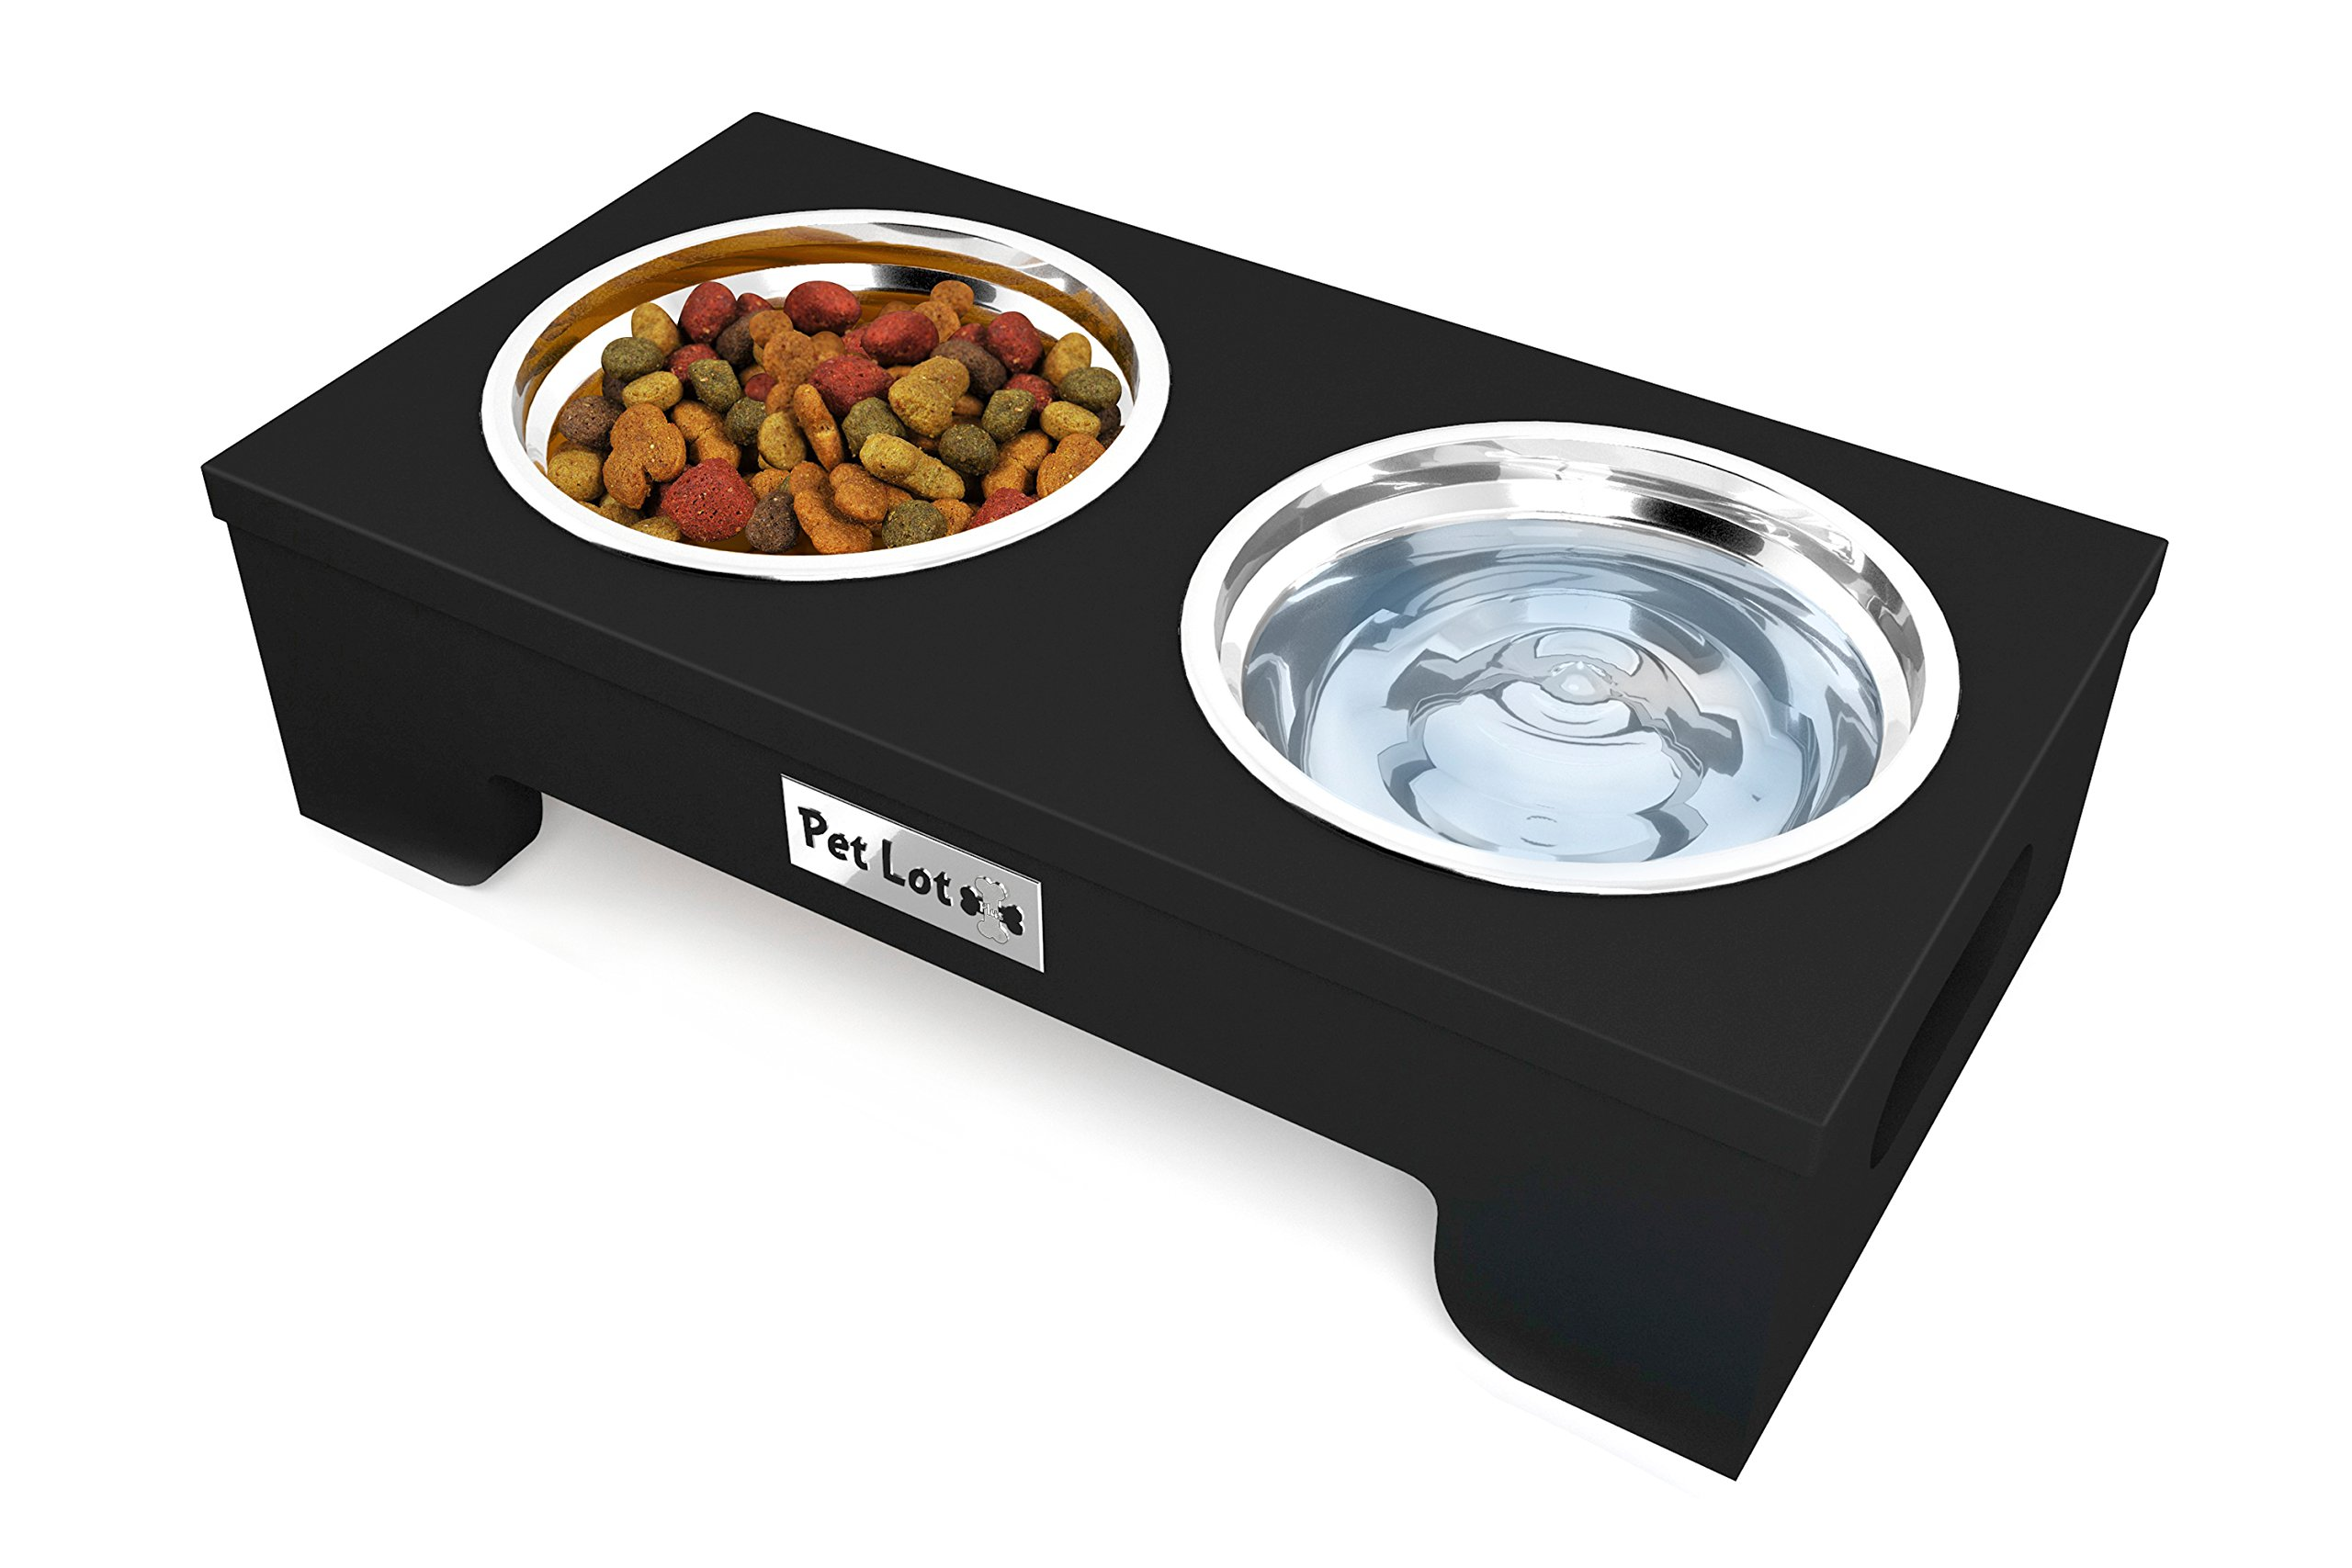 Raised Dog Bowls Stainless Steel | Elevated Dishes for Elderly and Healthy Pets |  Durable Stand for a Better Feeding Posture by Pet Lot Plus